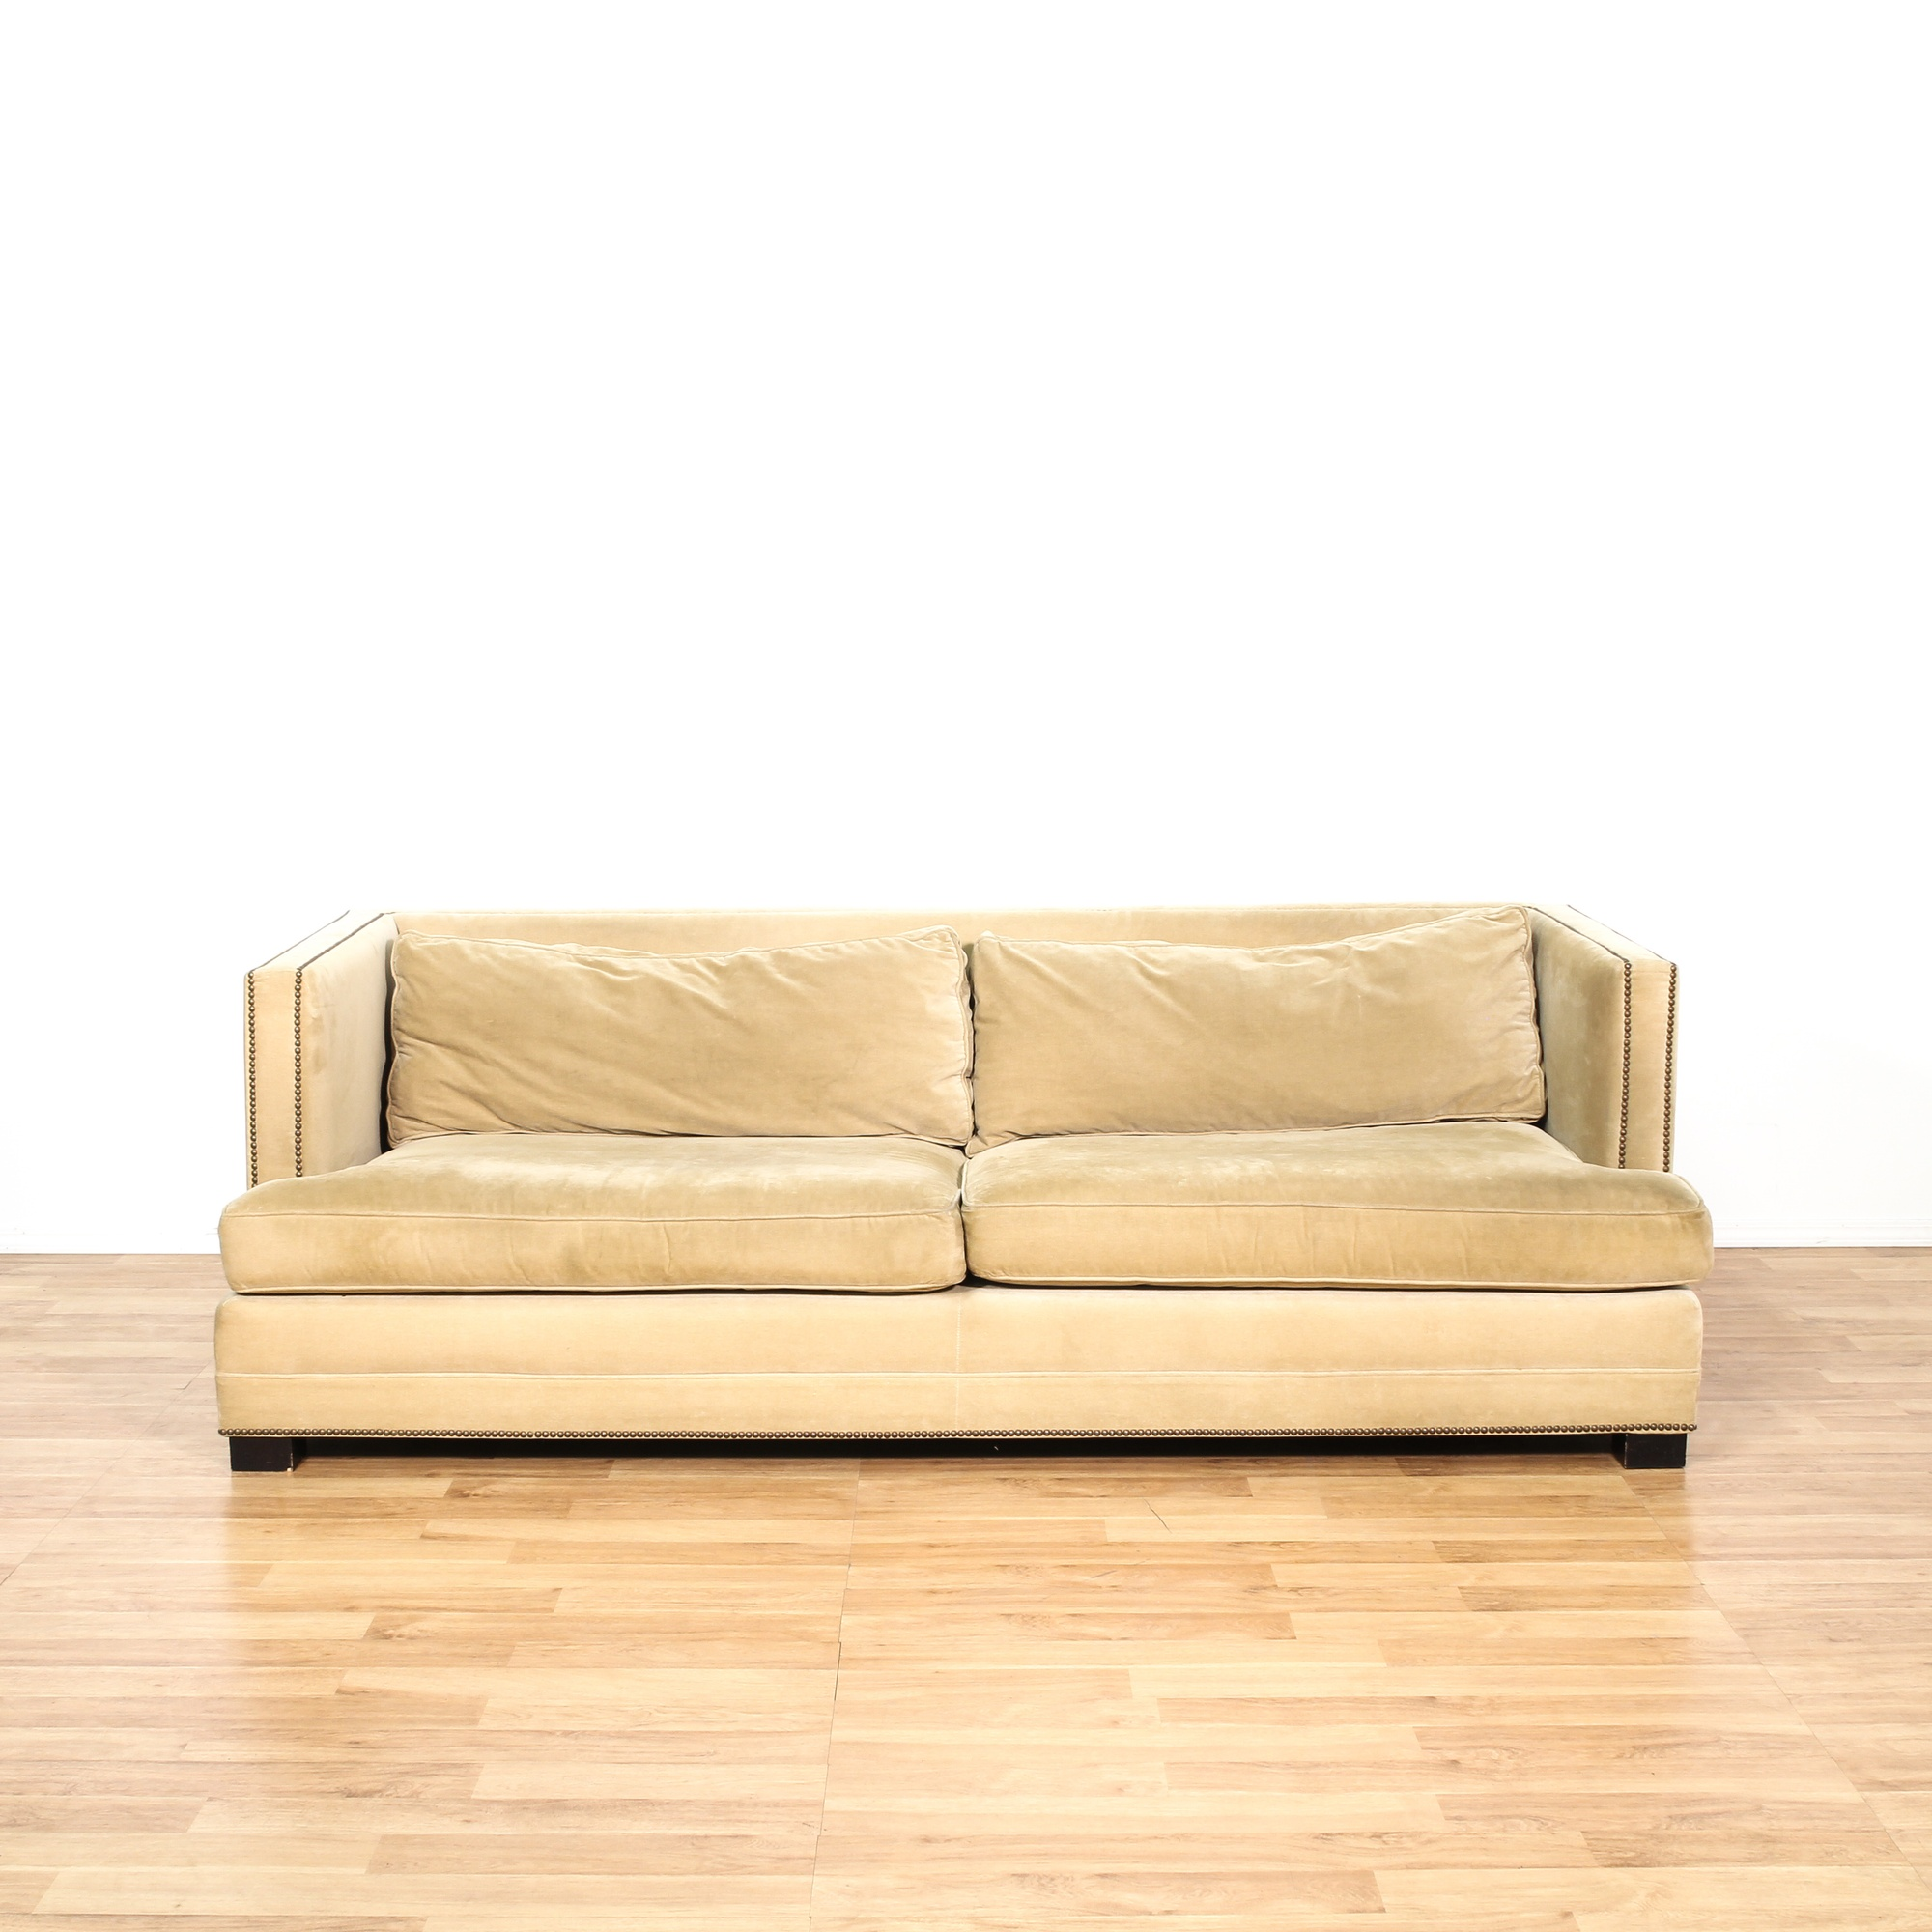 Mitchell and gold studded upholstered sofa loveseat for Studded couch